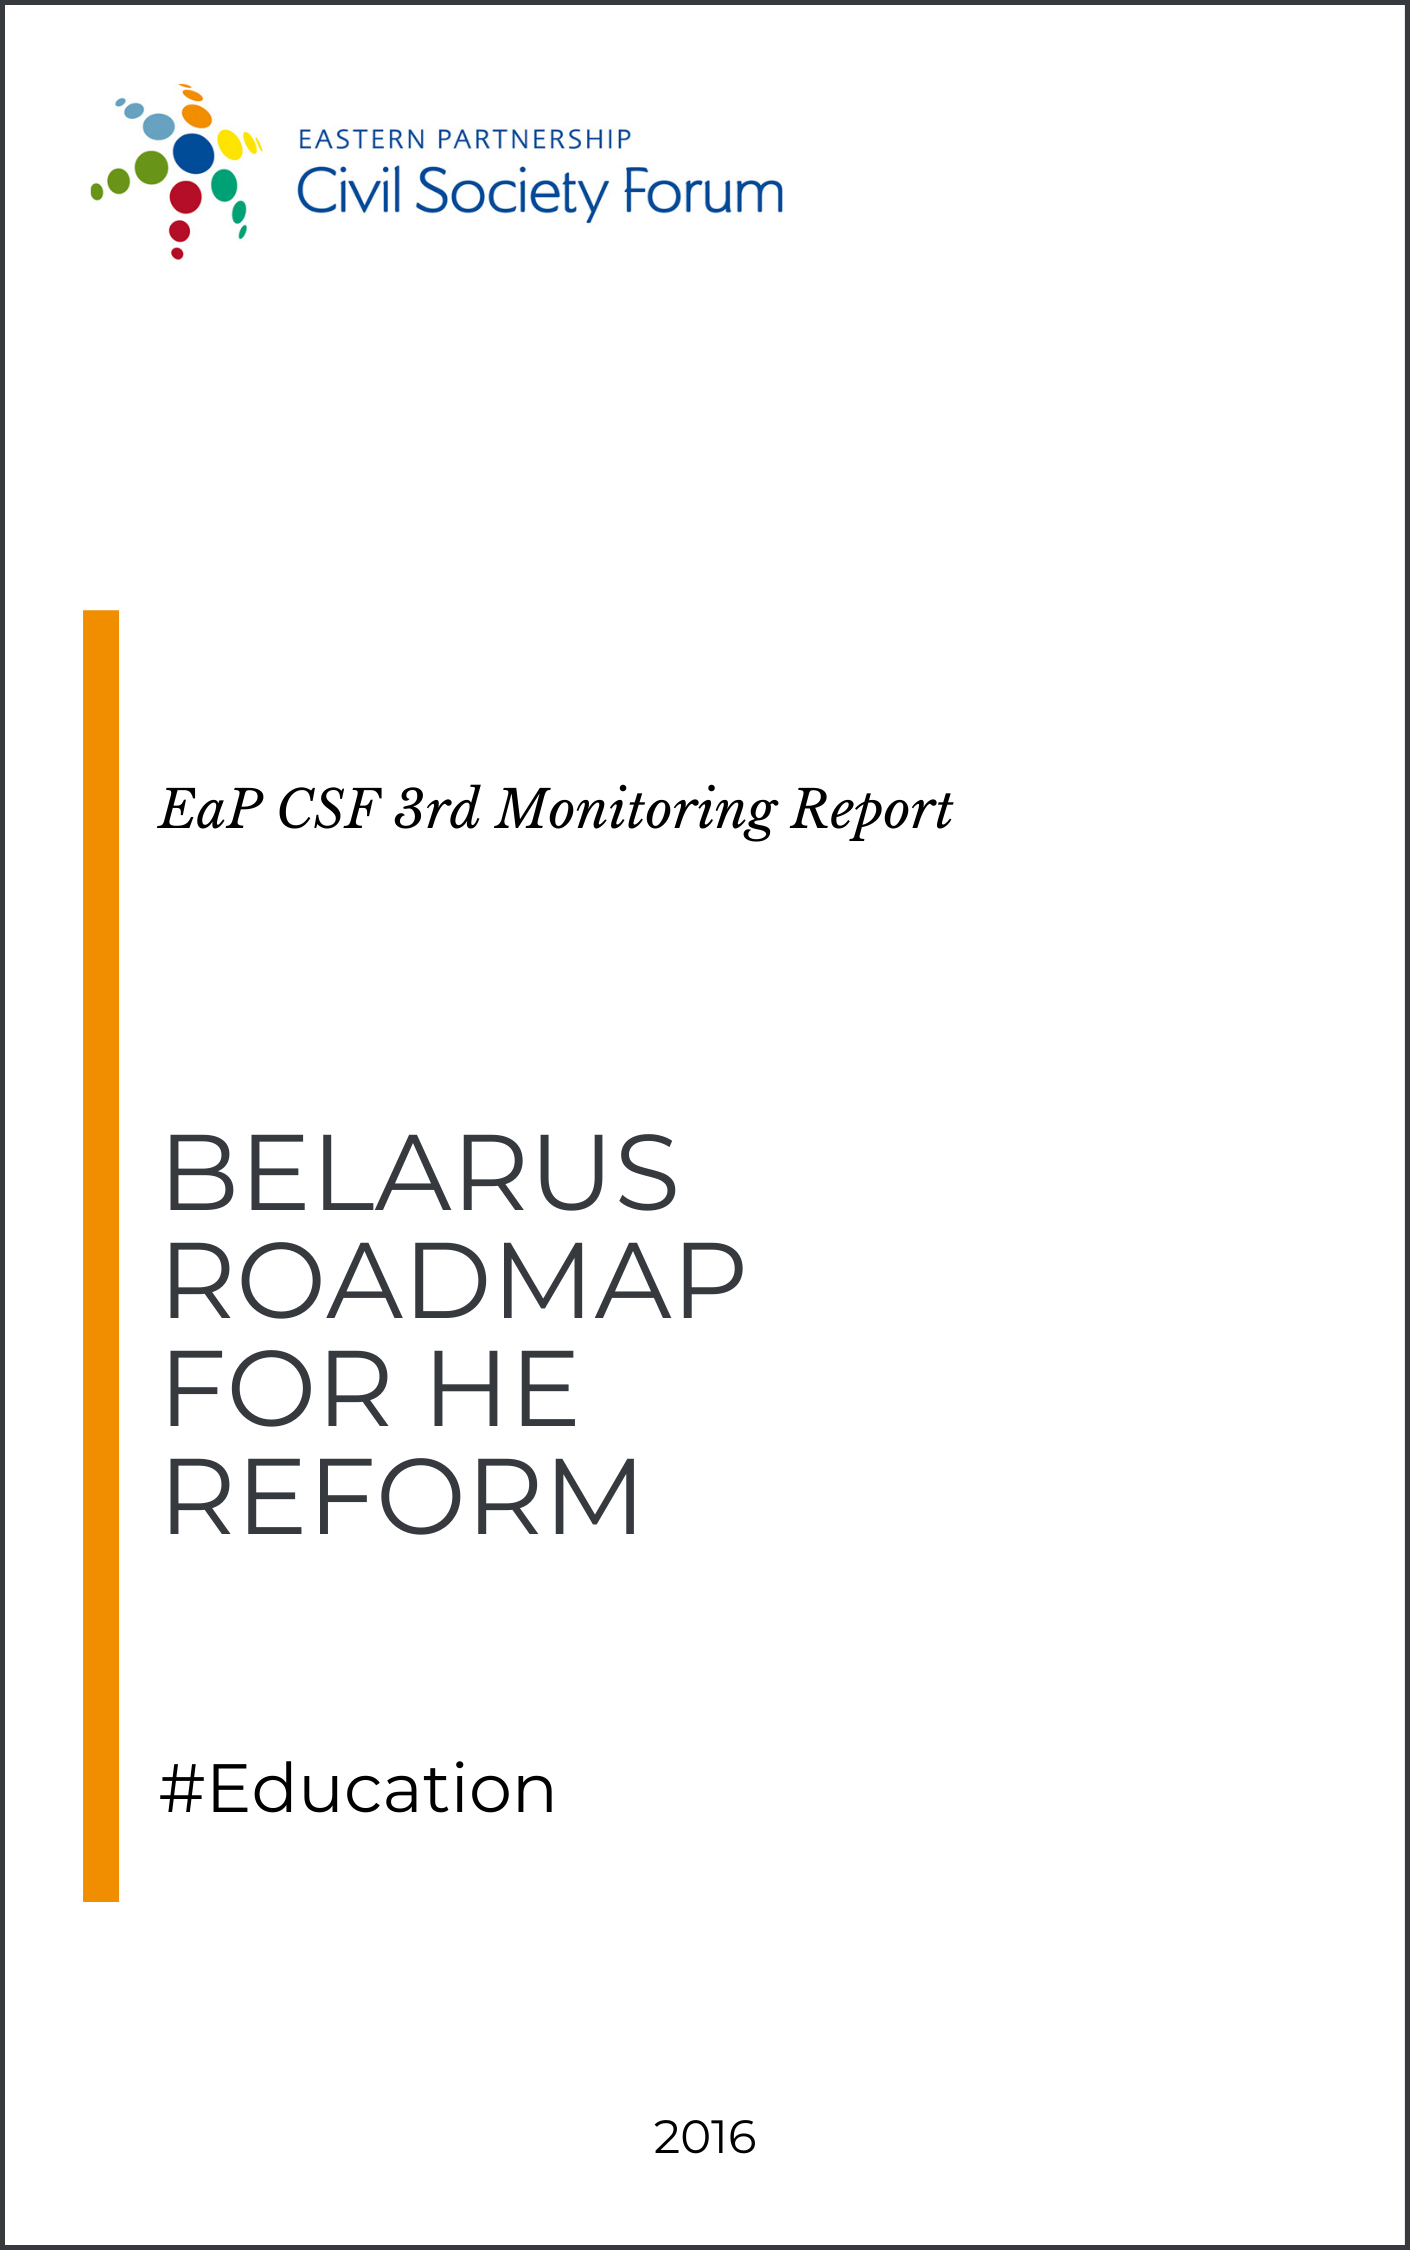 Belarus Roadmap for HE Reform (3rd Monitoring Report)